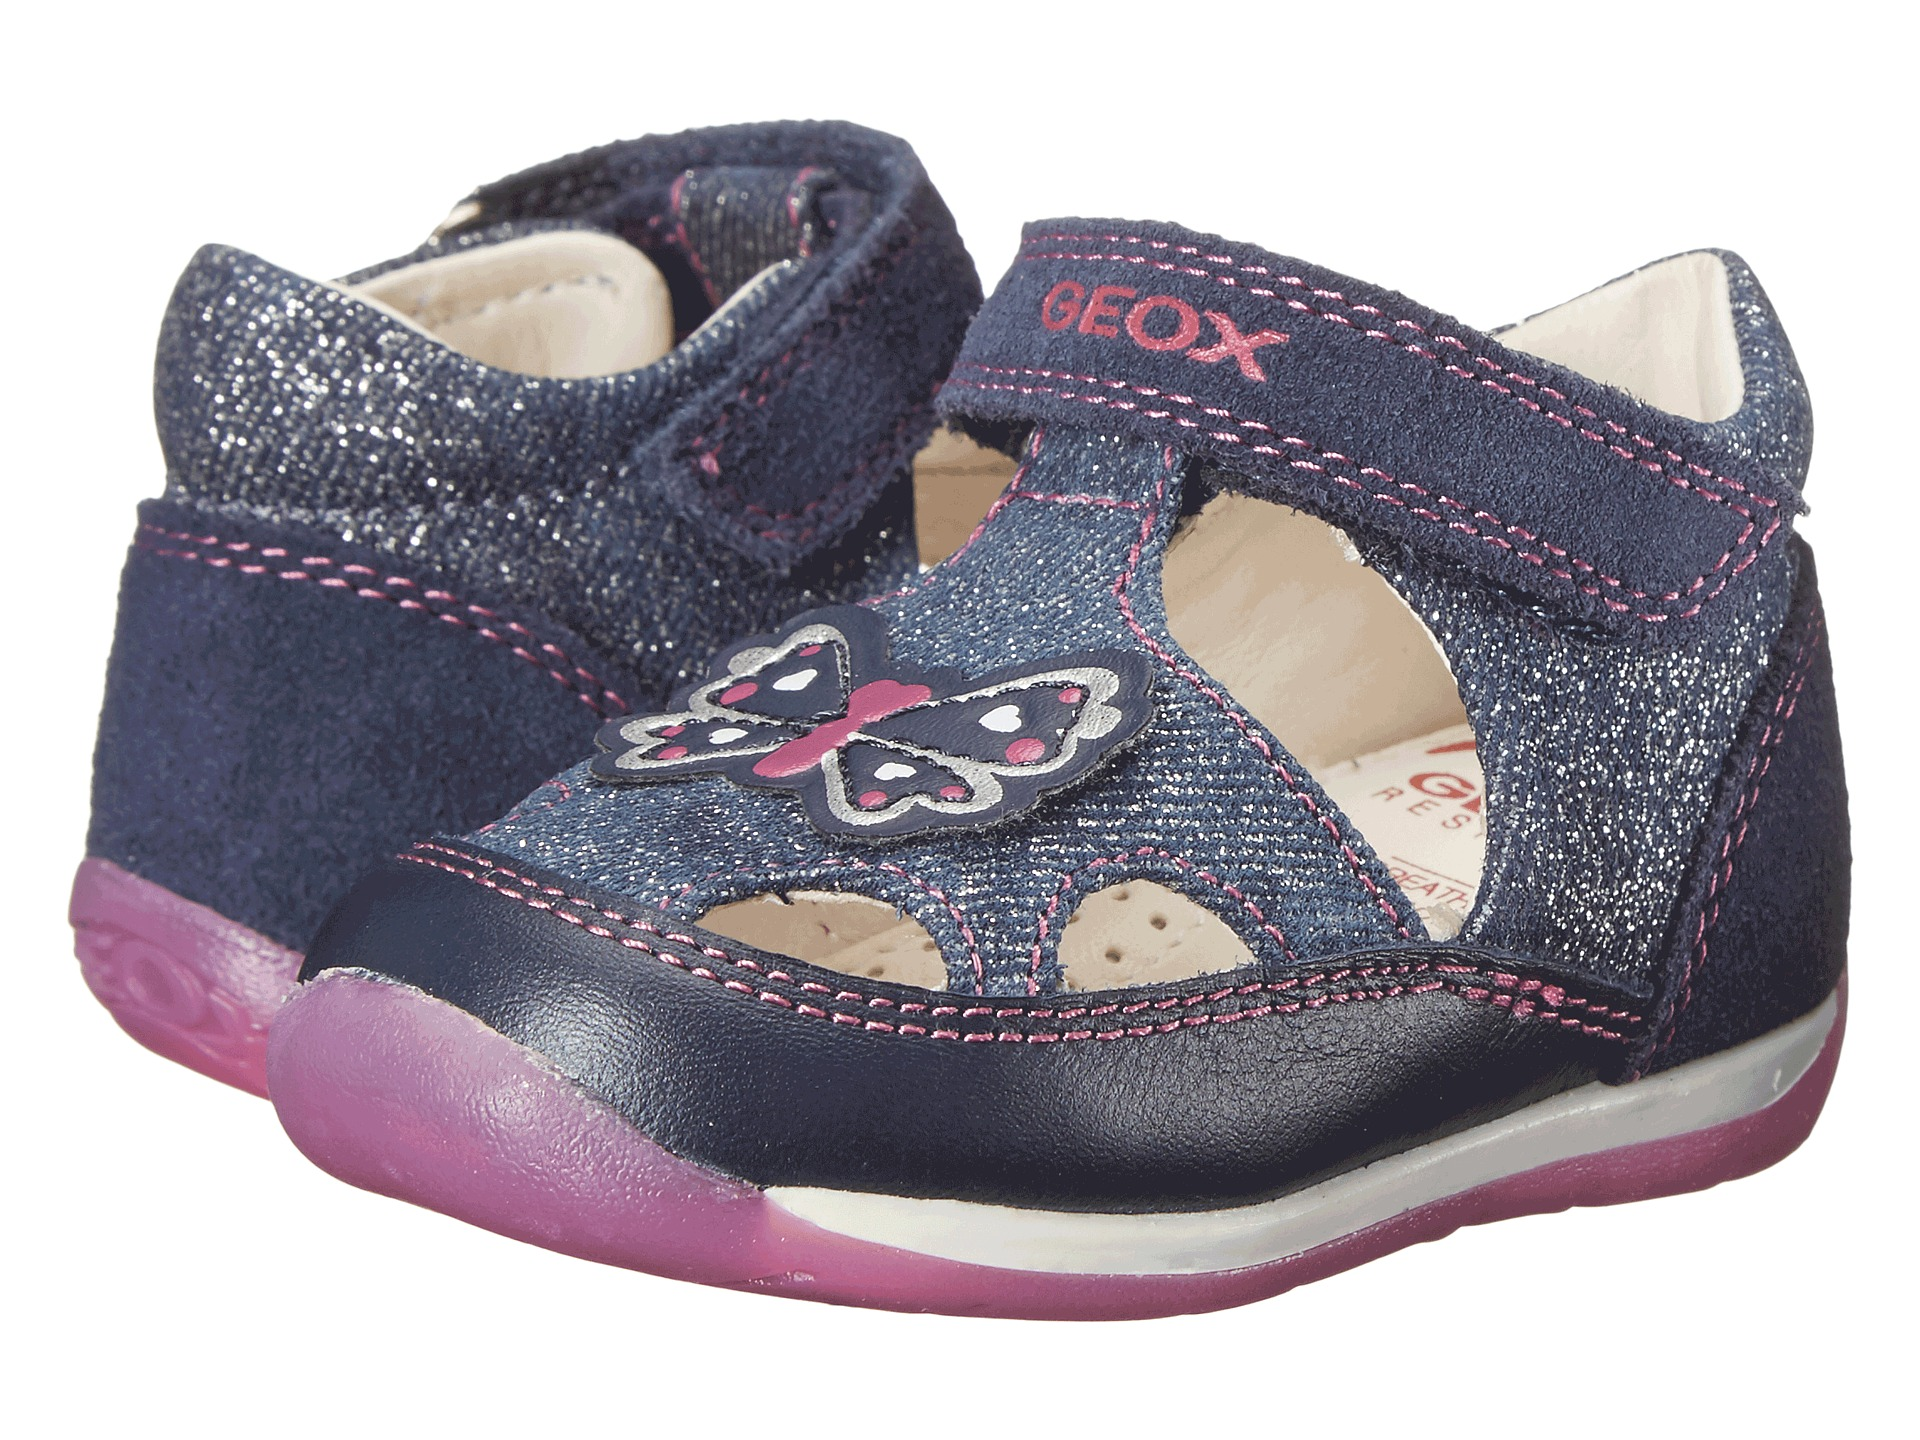 Geox Kids Baby Each Girl 6 Infant Toddler Zappos